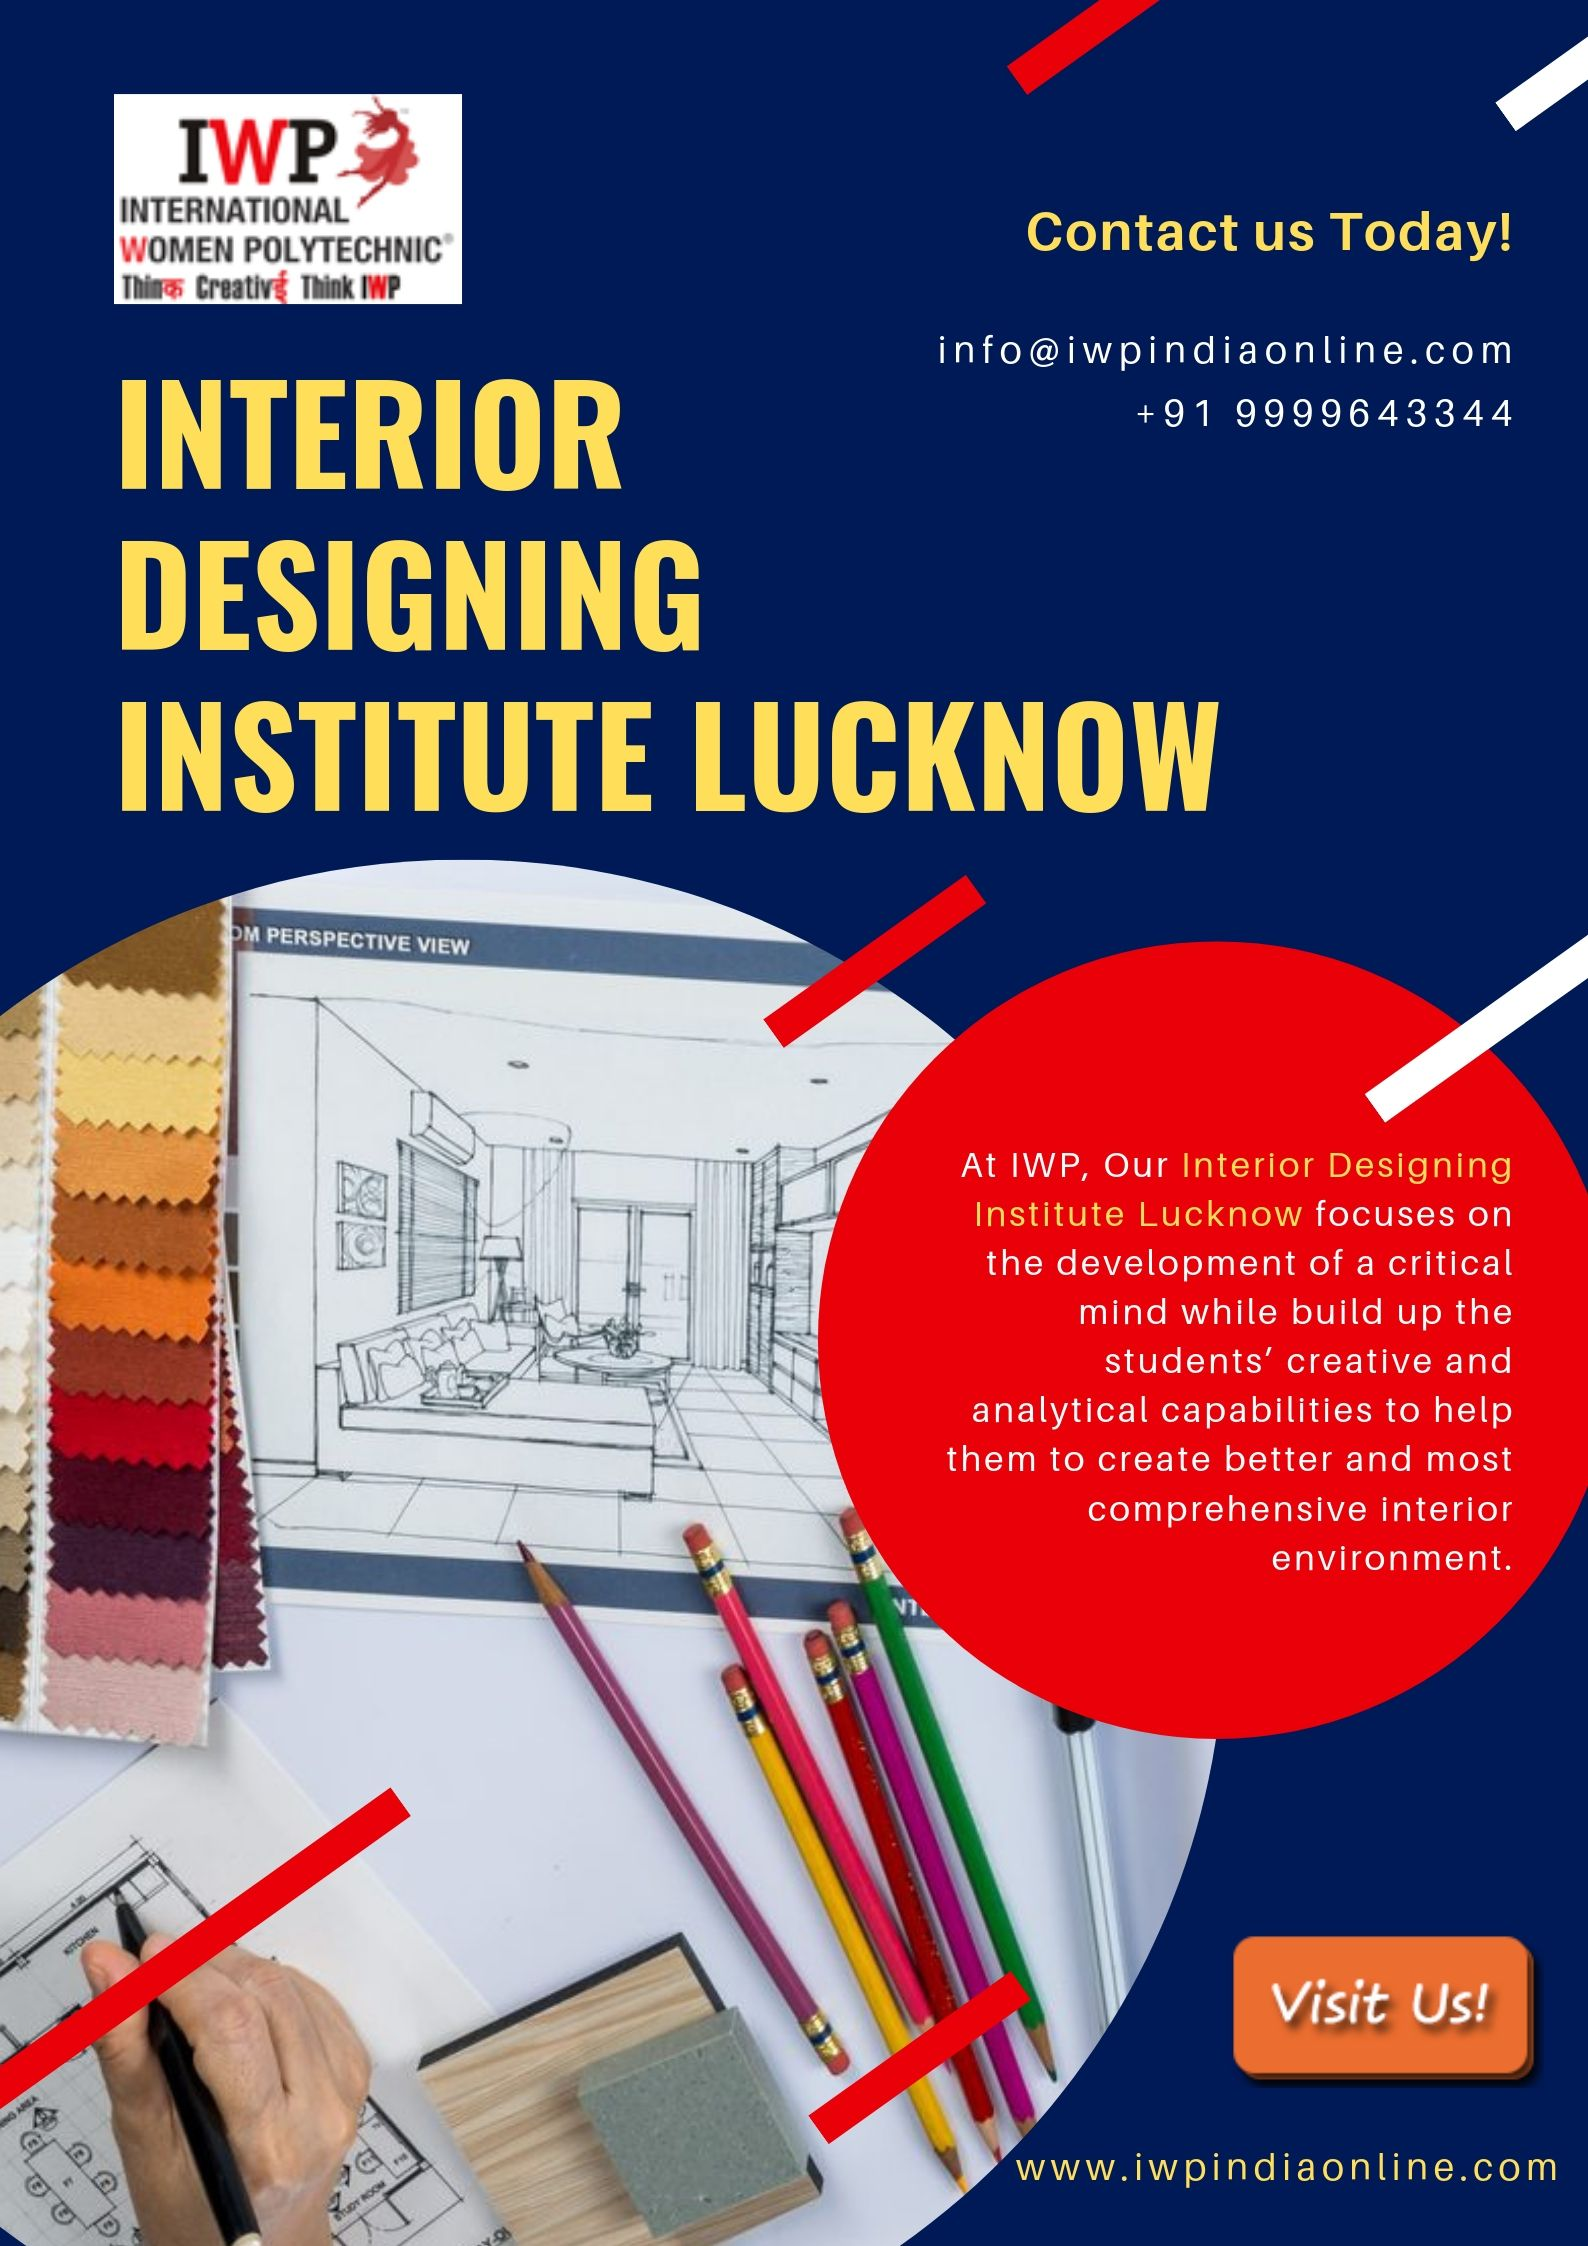 Those Who Want To Pursue A Career In Interior Designing Make Your Visit At Iwp Which Is The Finest Interior Designing Instit With Images Lucknow Design Solutions Design